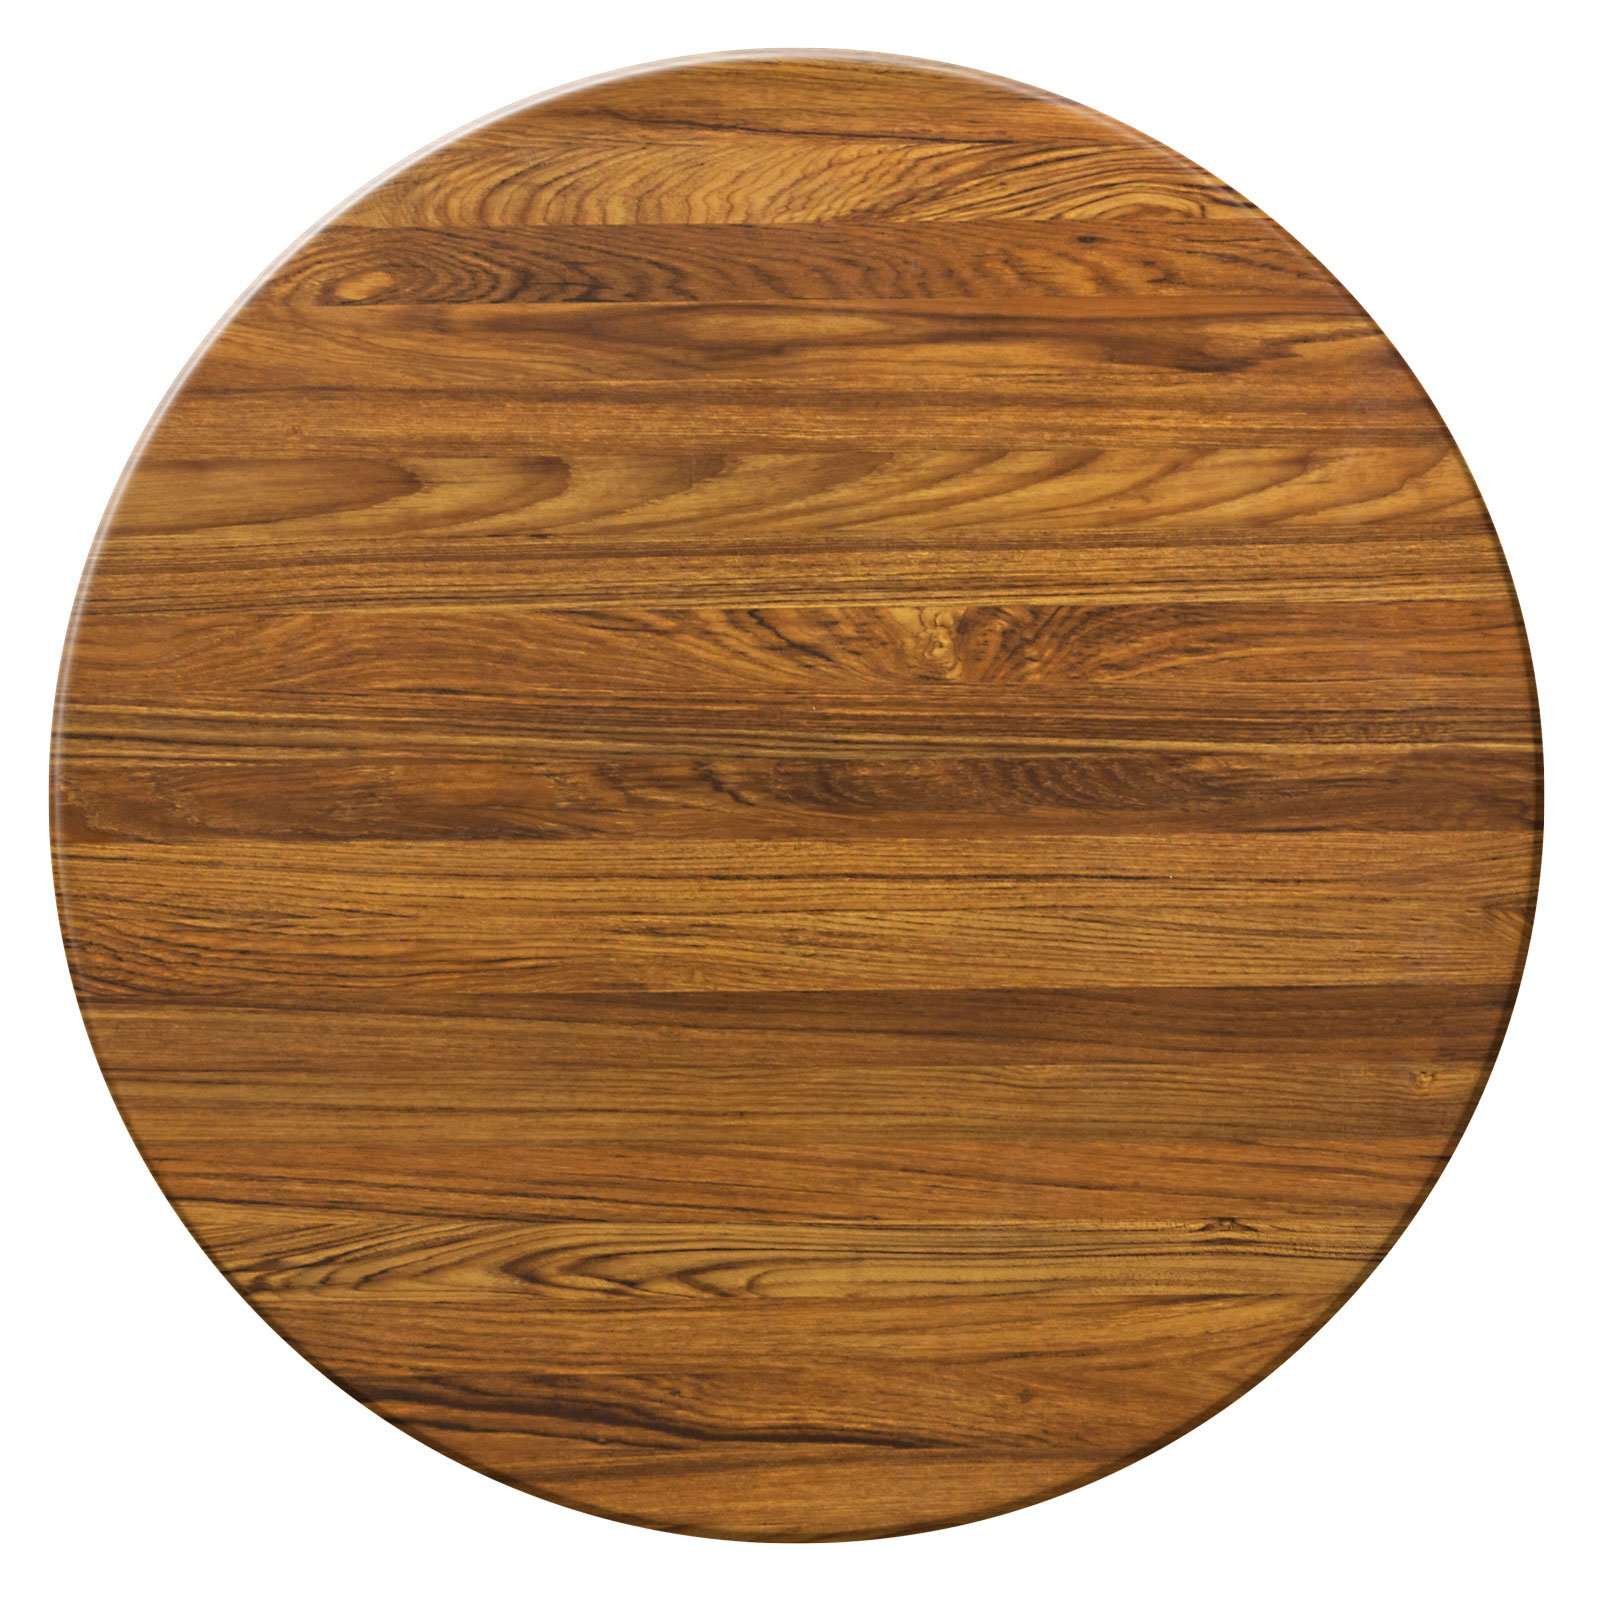 Duratop 36'' Round Table Top in Teak